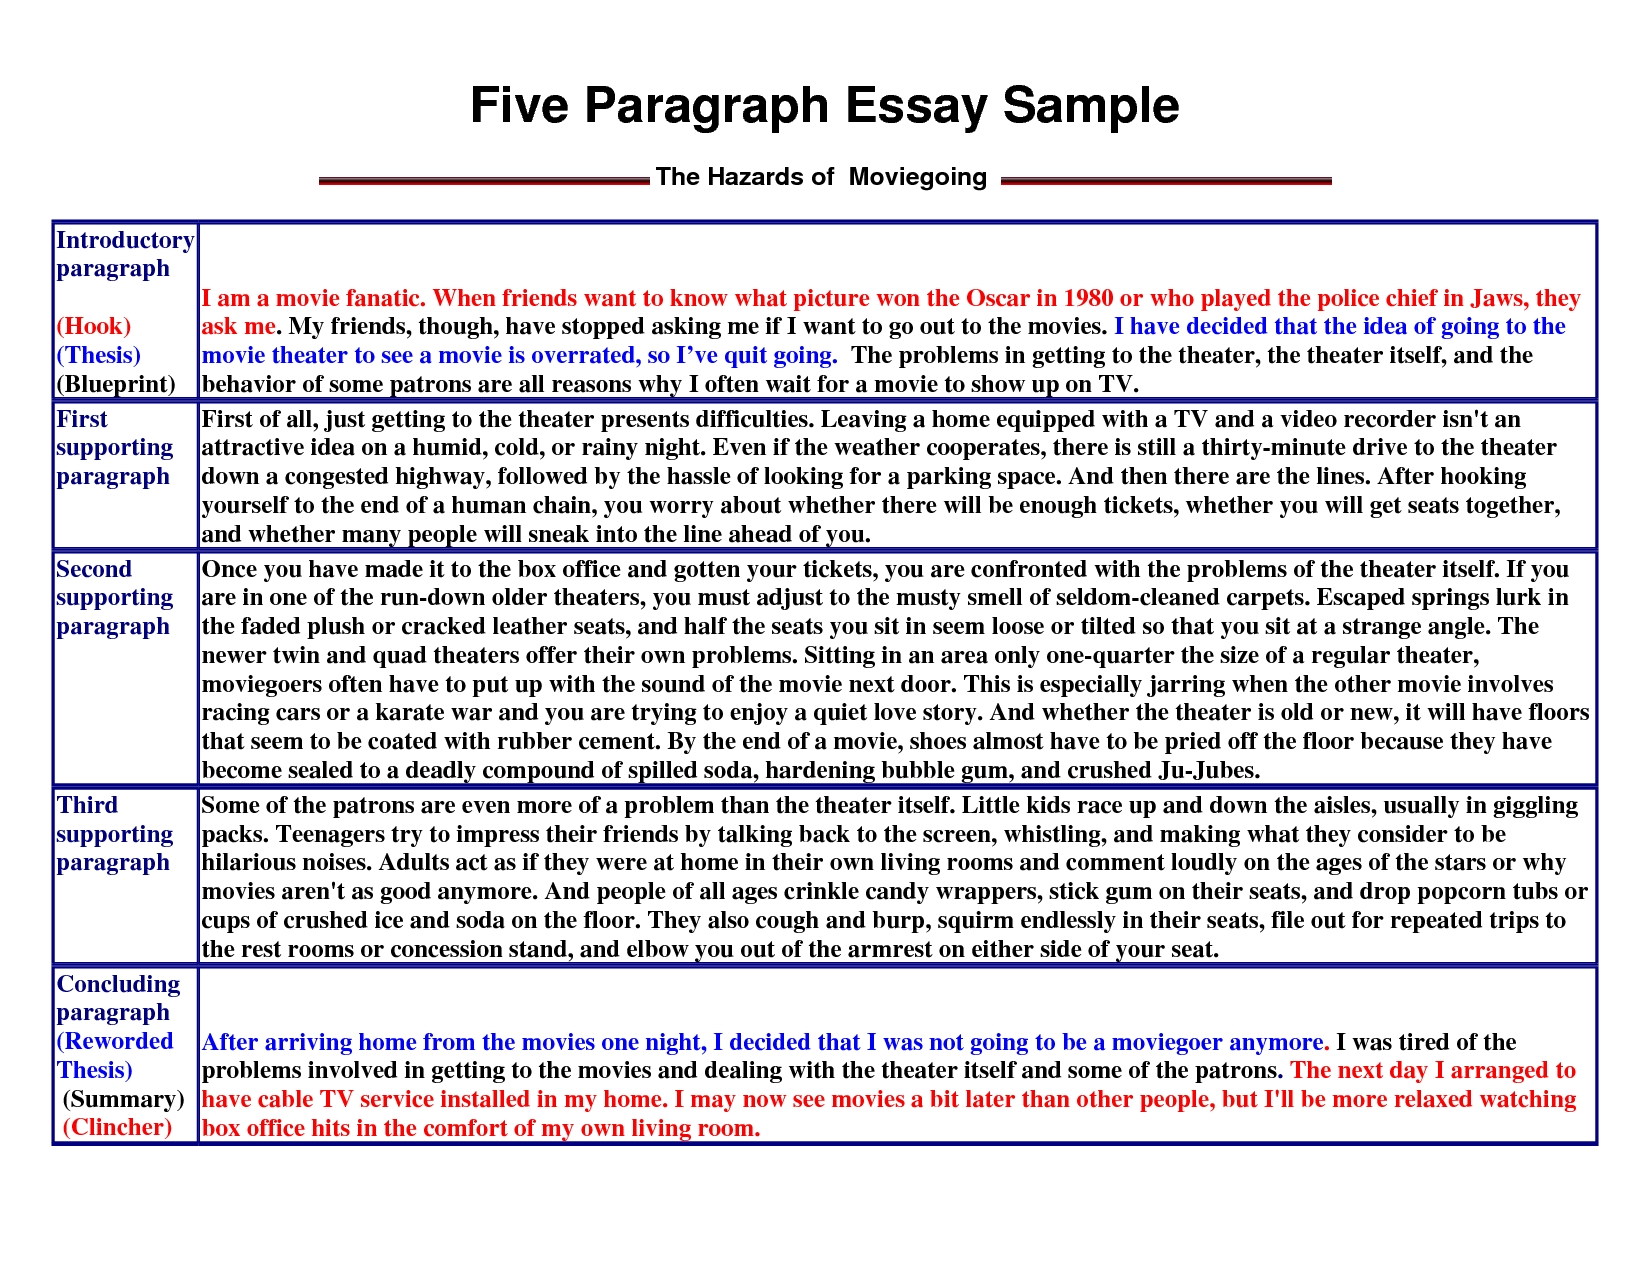 003 Paragraph Essay Oyle Kalakaari Co Intended For Phenomenal 4 Samples Outline Format Structure Full